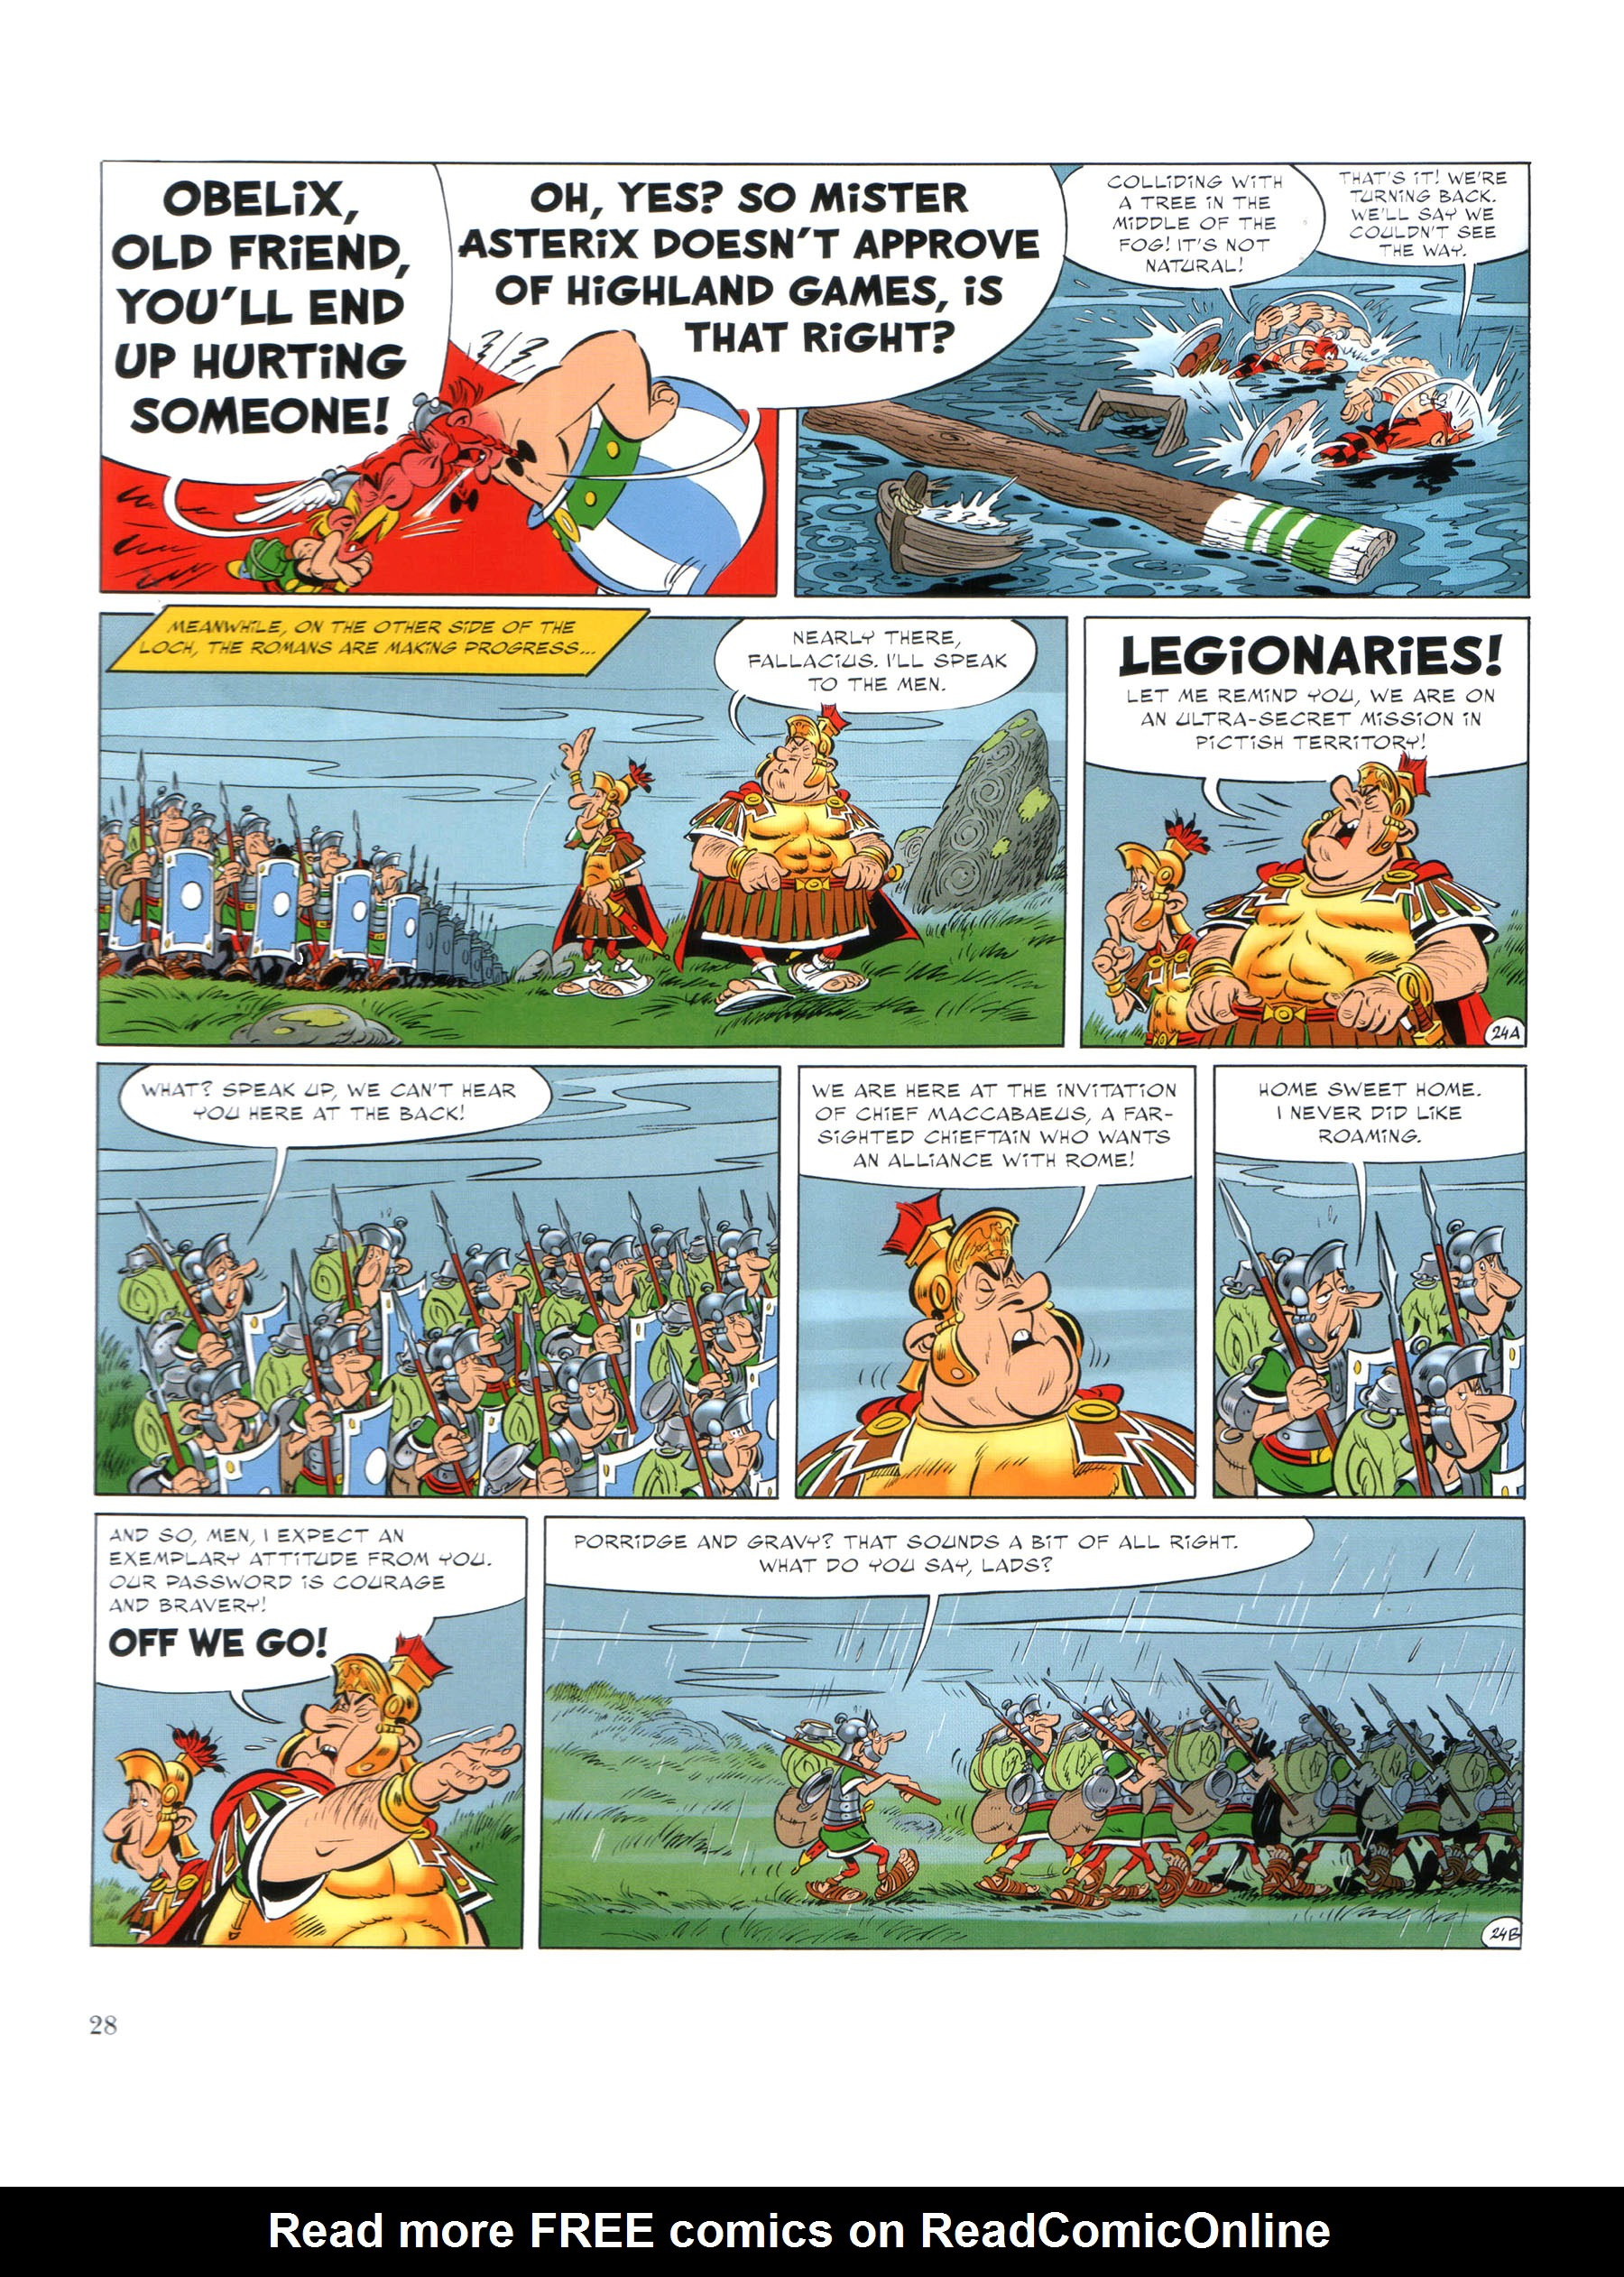 Read online Asterix comic -  Issue #35 - 29